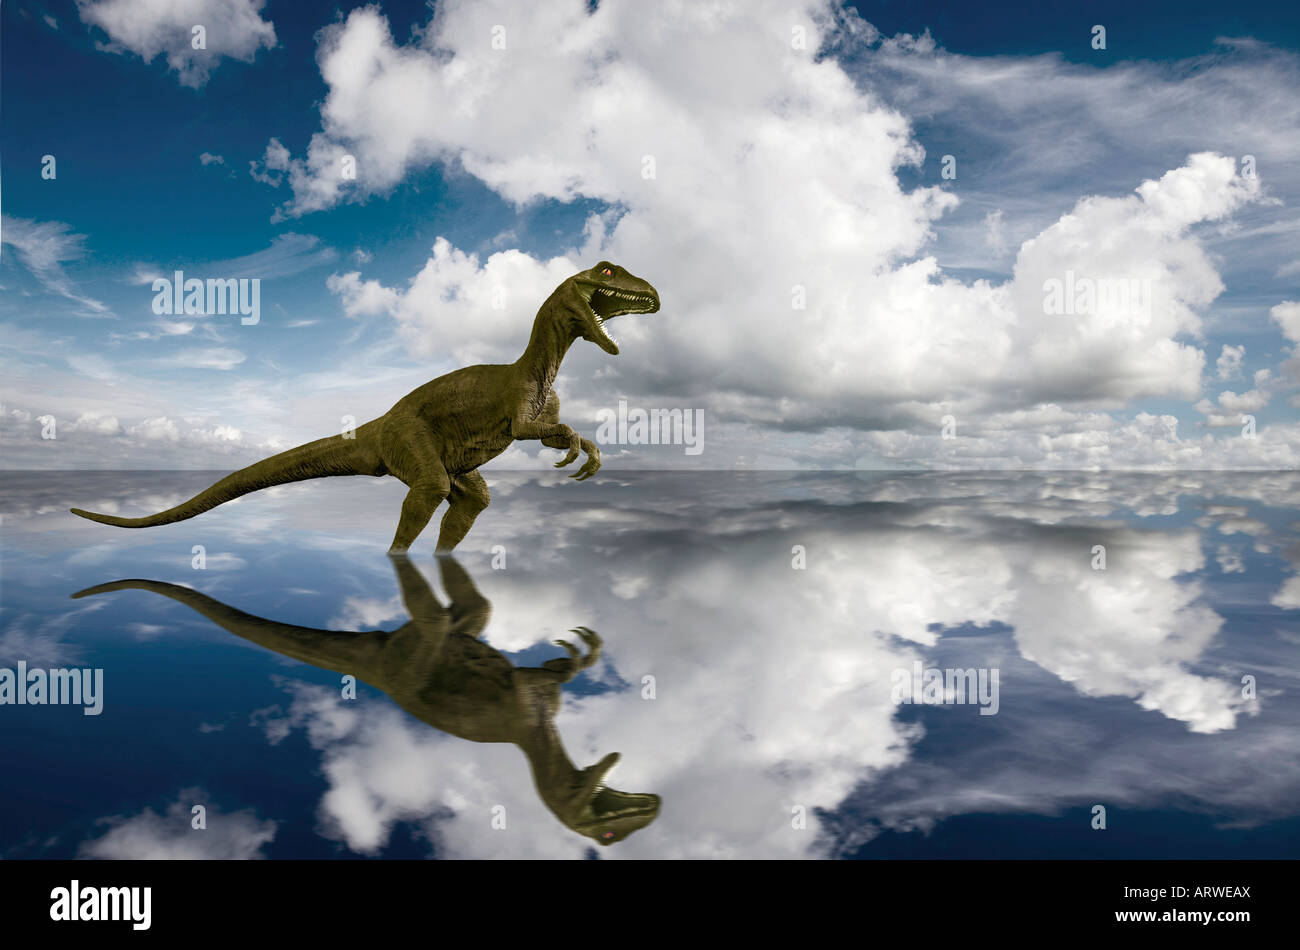 Dinosaur wading in sea clouds reflected in perfectly calm sea - Stock Image